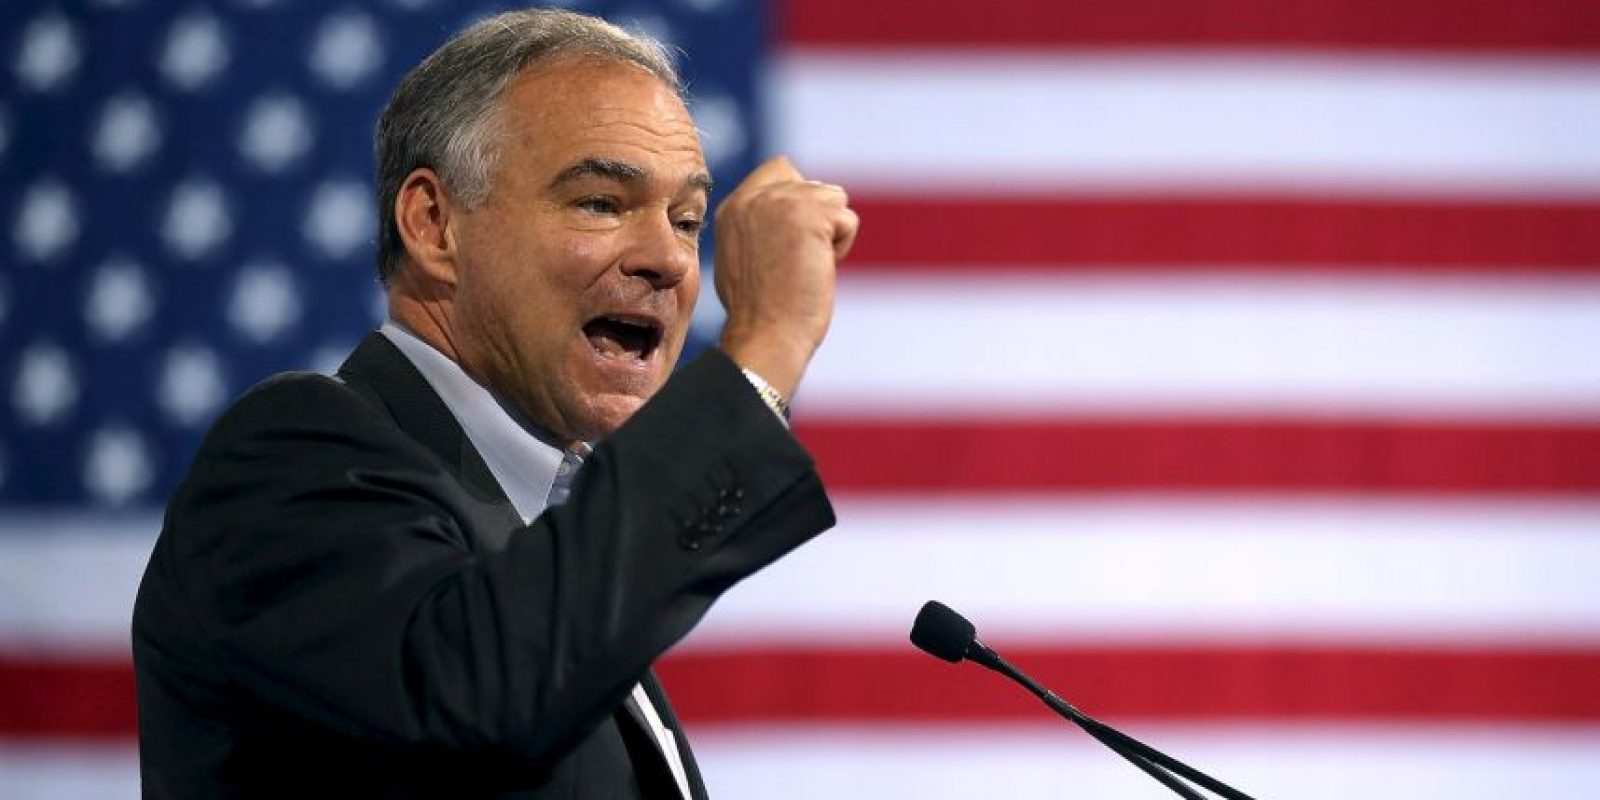 Tim Kaine, senador de Virgina Foto: Getty Images